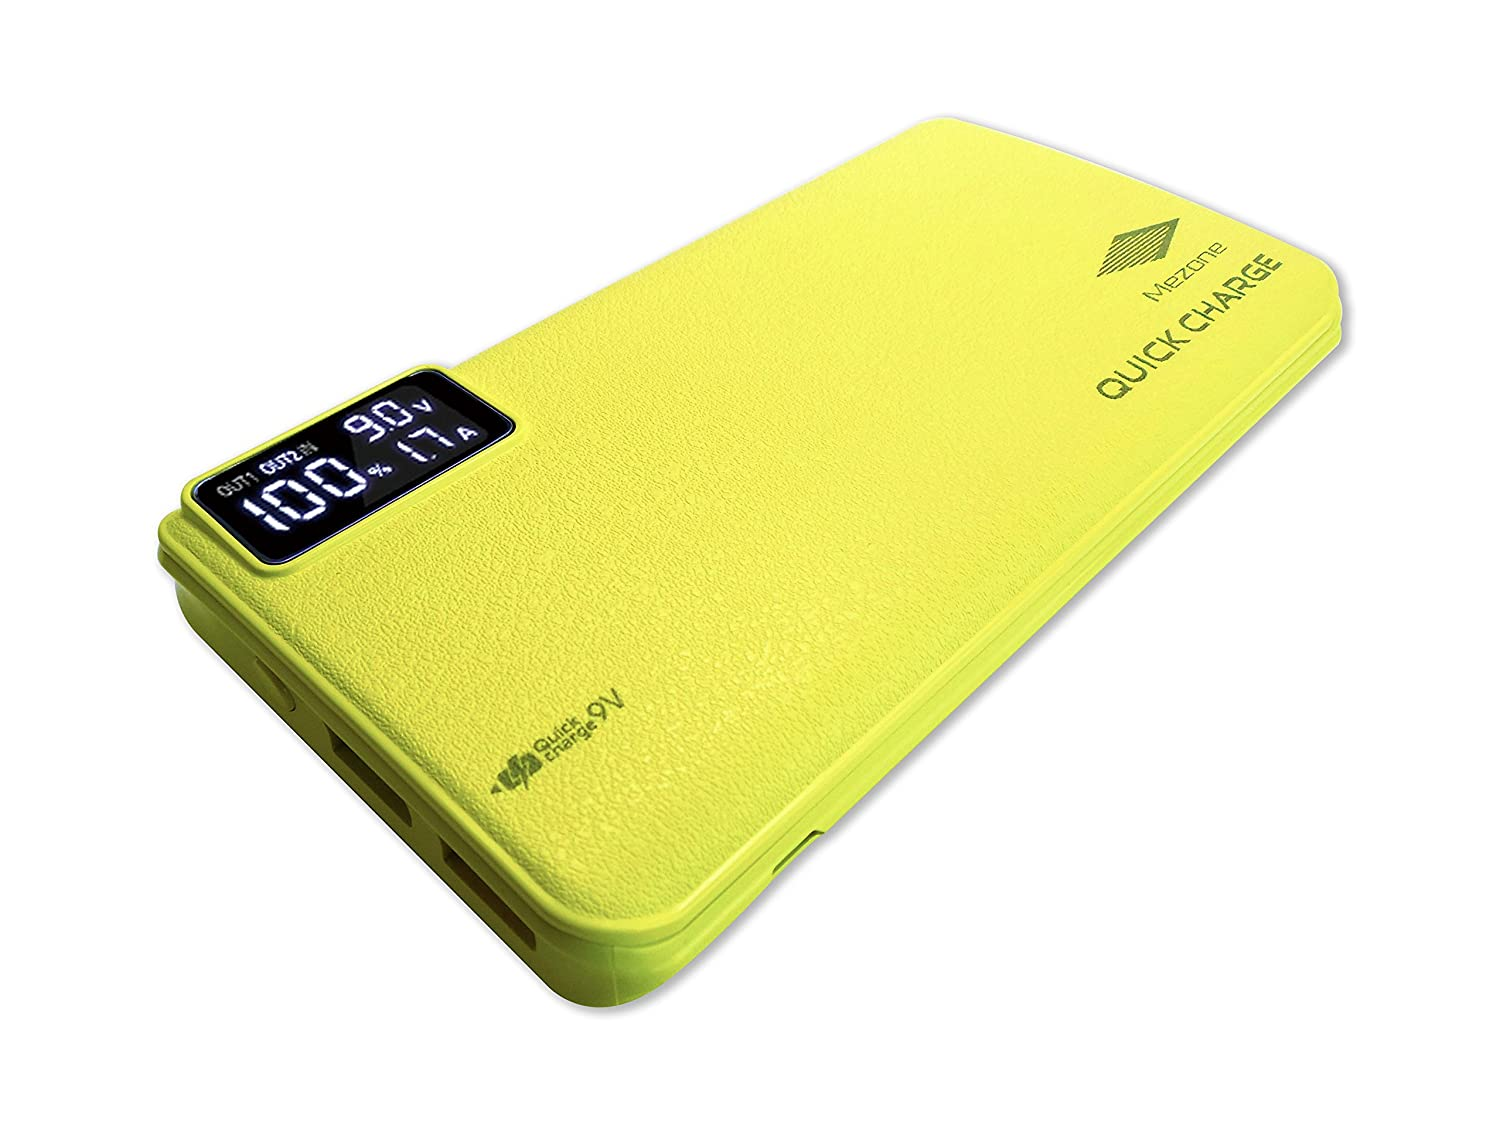 Amazon.com: 10,000mAh Quick Charge 3.0 Cargador Portable ...